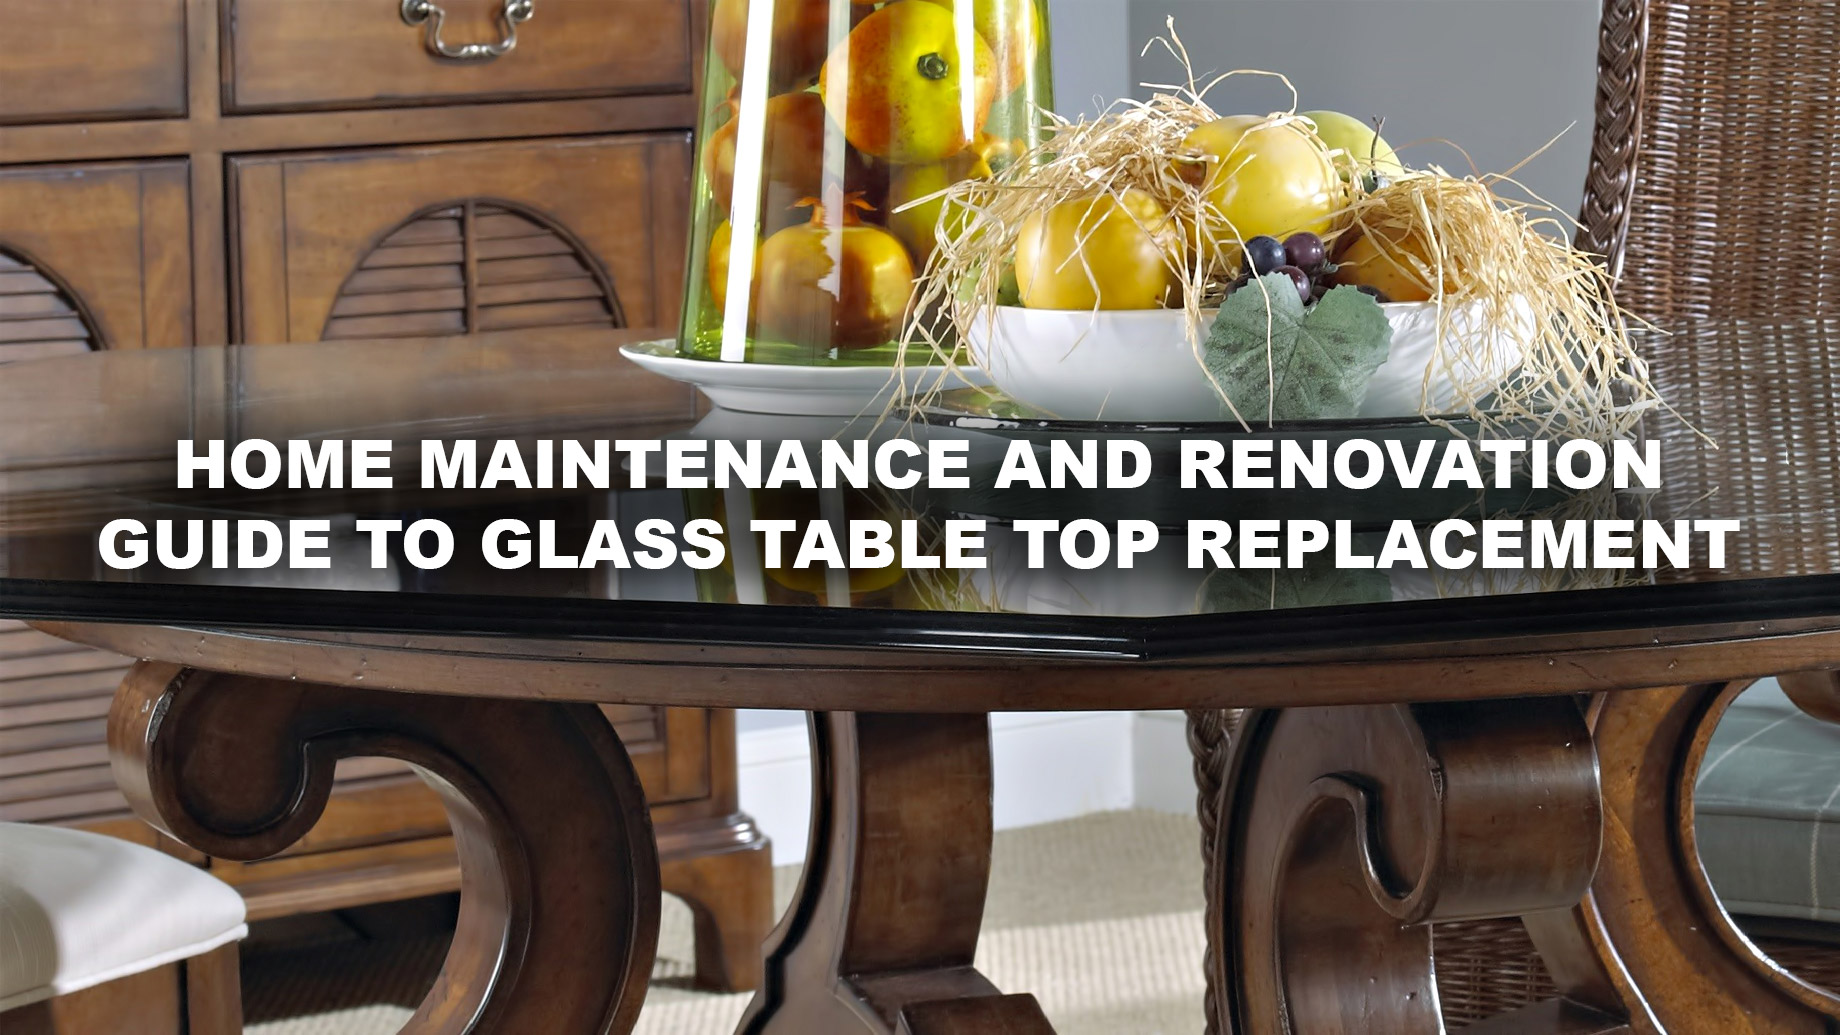 Renovation Guide To Gl Table Top